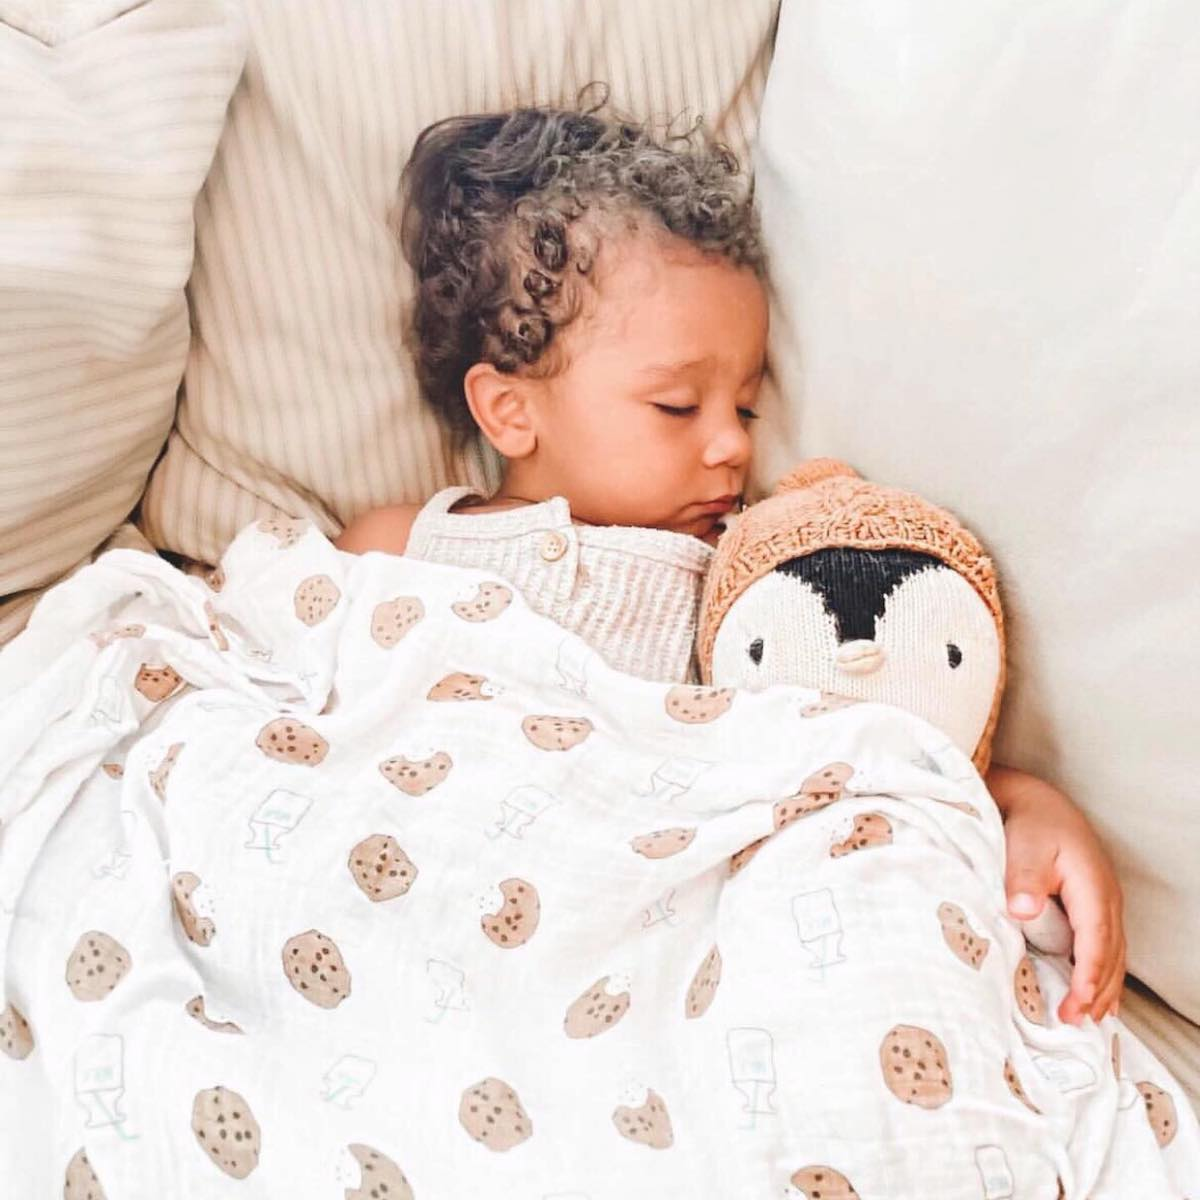 A toddler sleeping in a bed with a penguin stuffed animal with a Bundled Baby swaddle